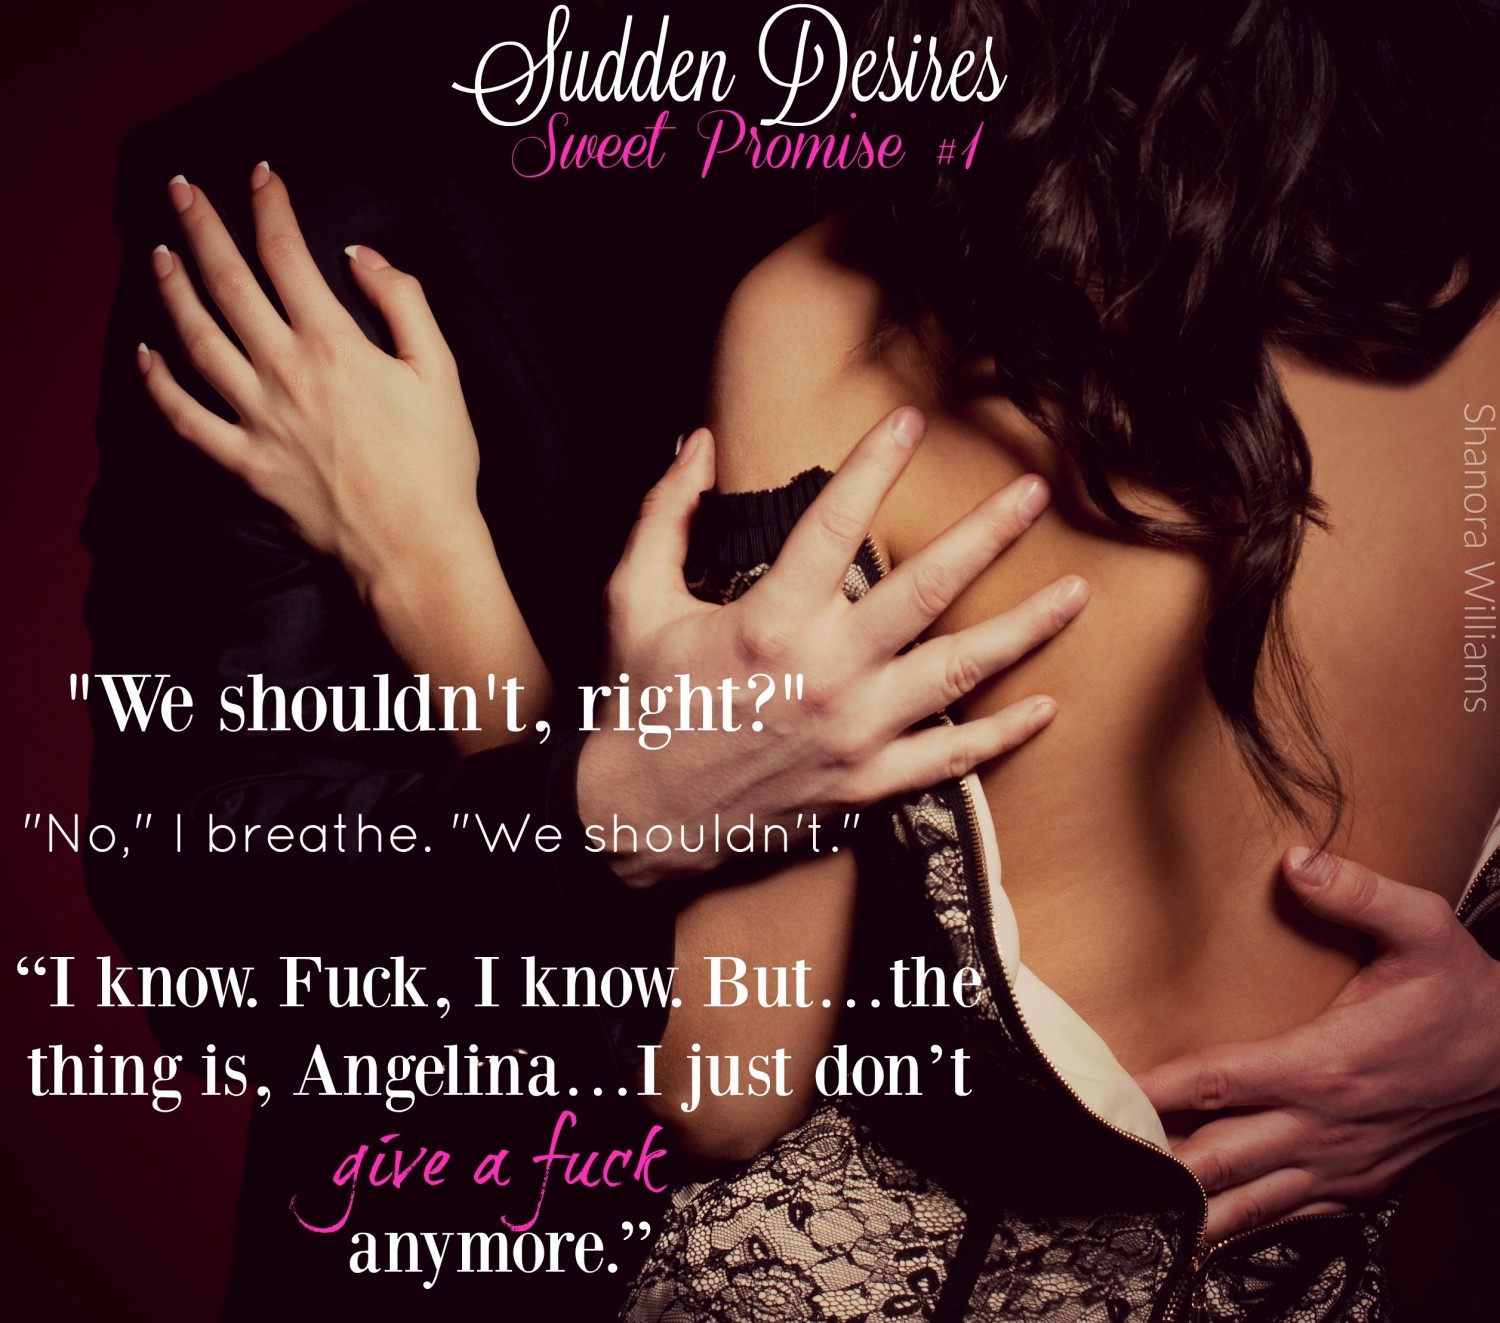 Sudden Desires Teaser